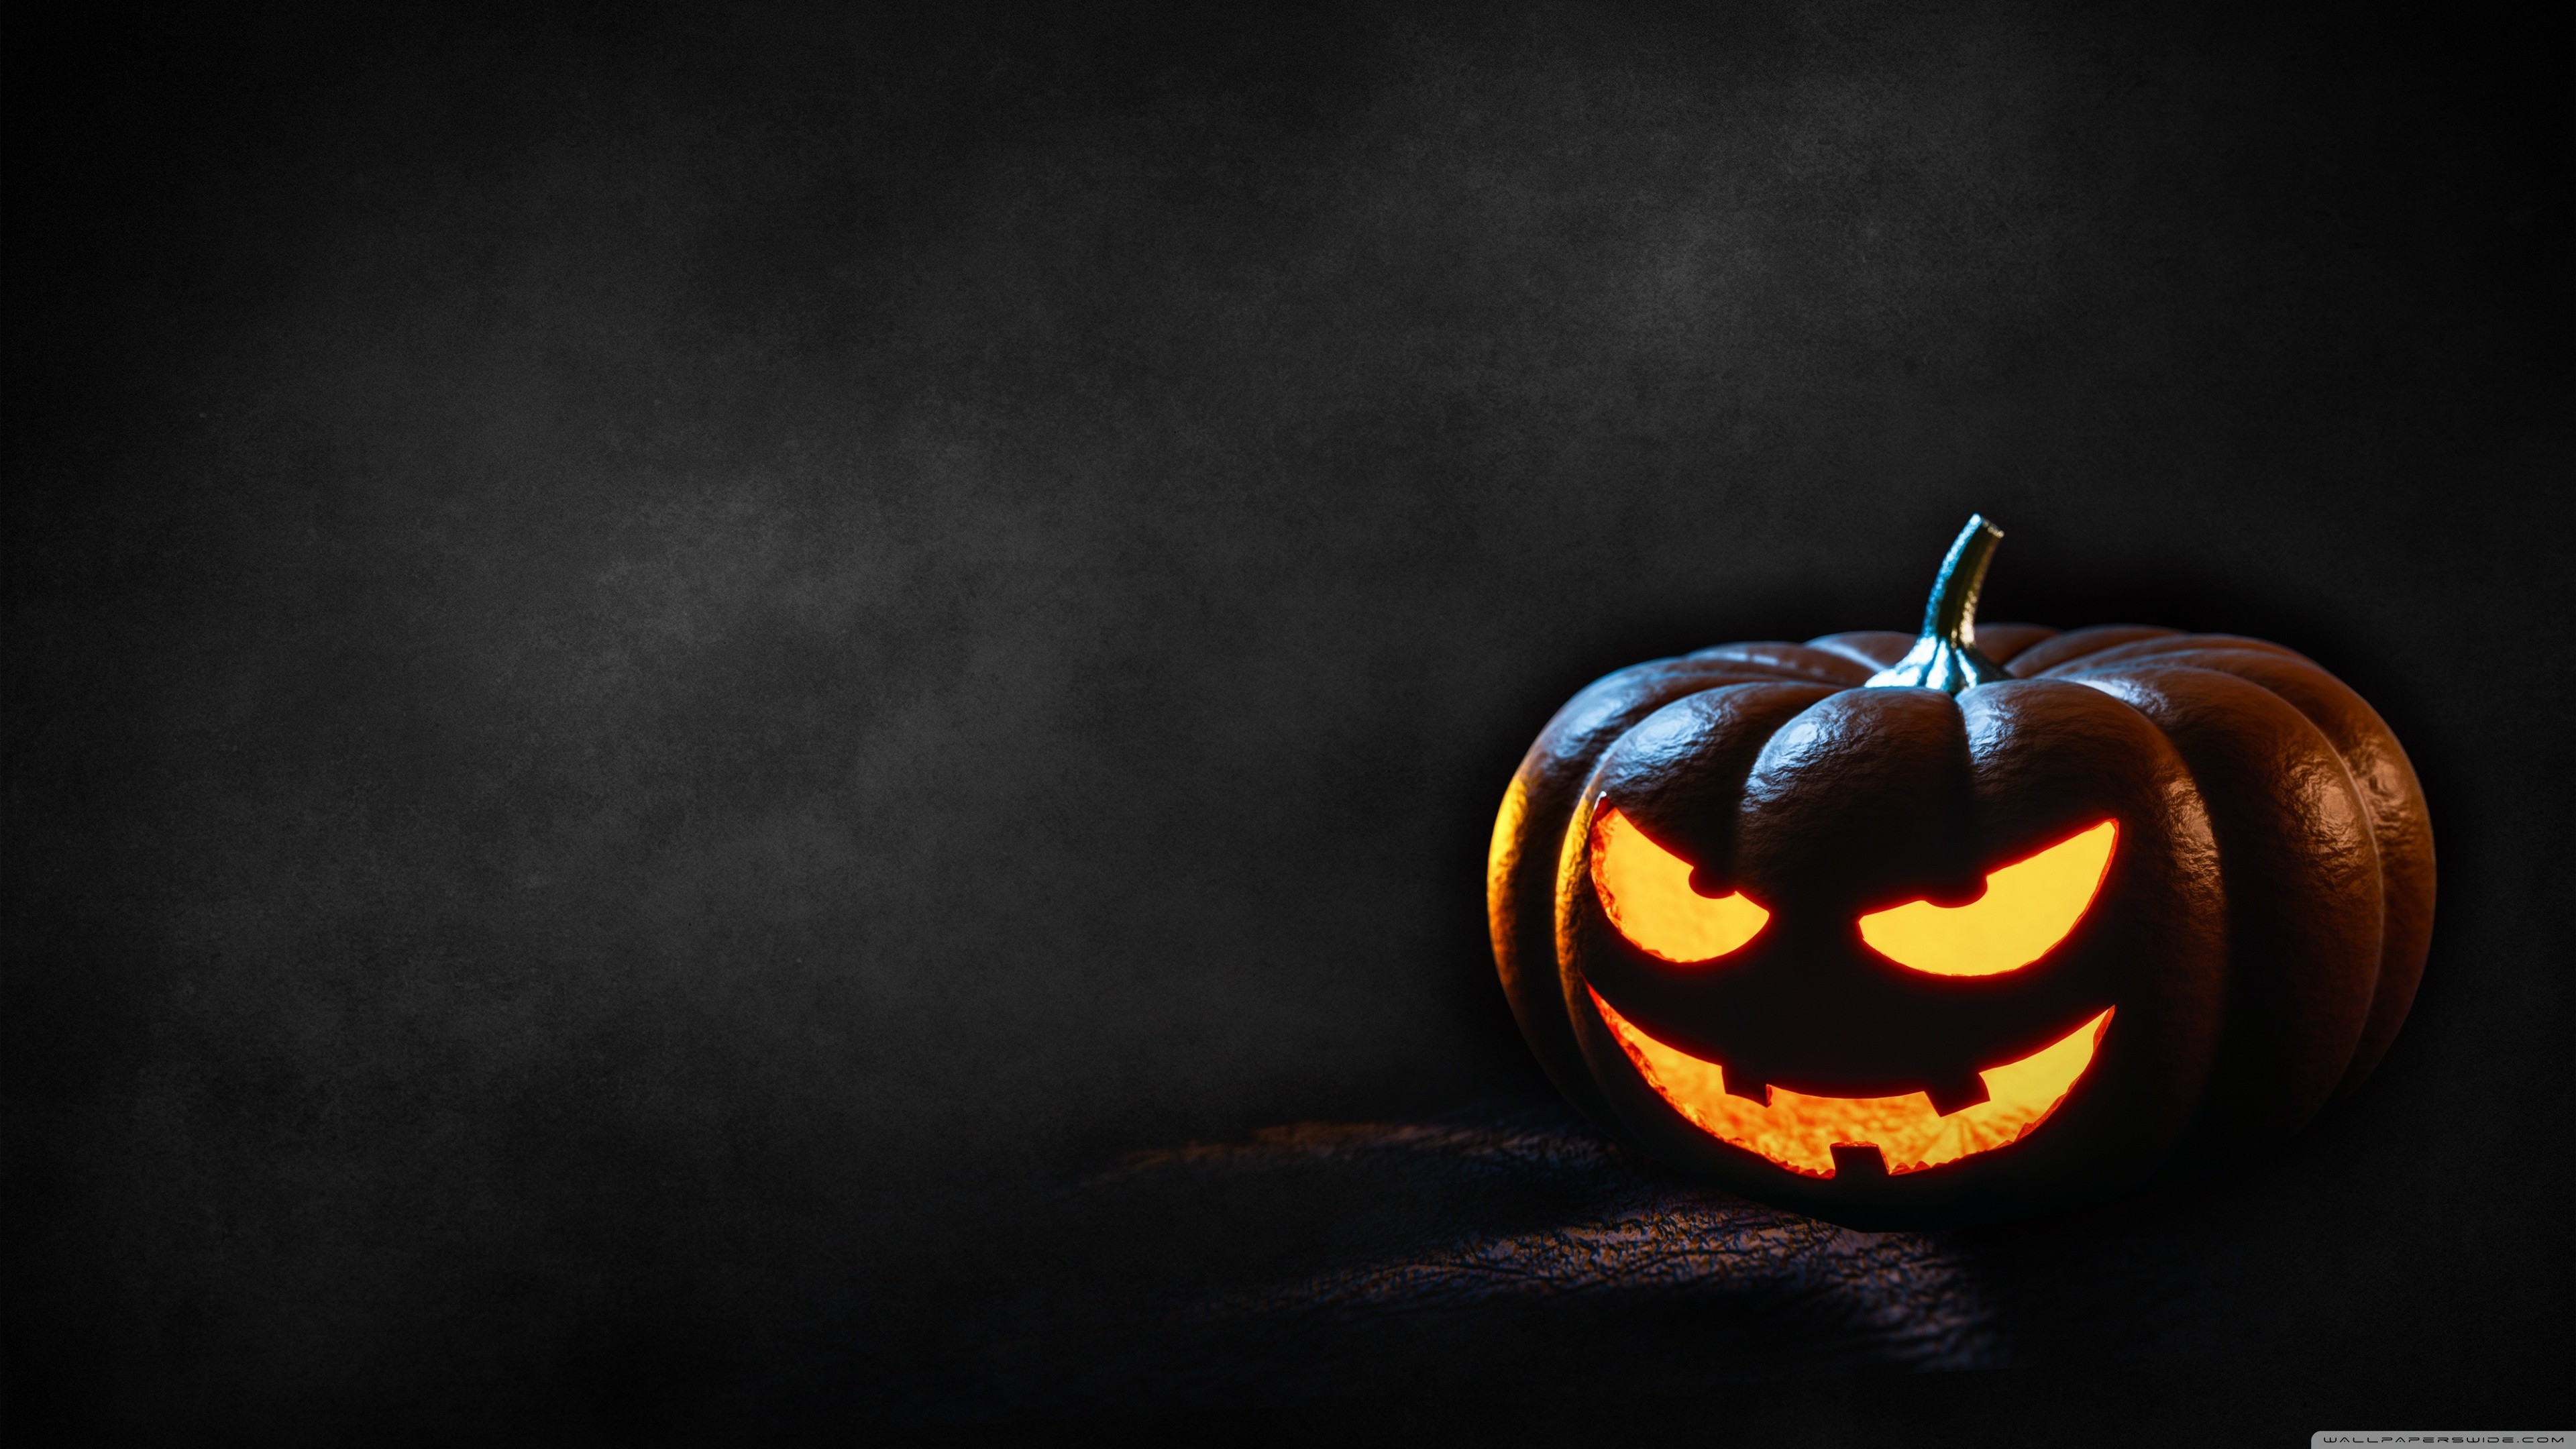 3840x2160 Halloween Desktop Wallpaper Images